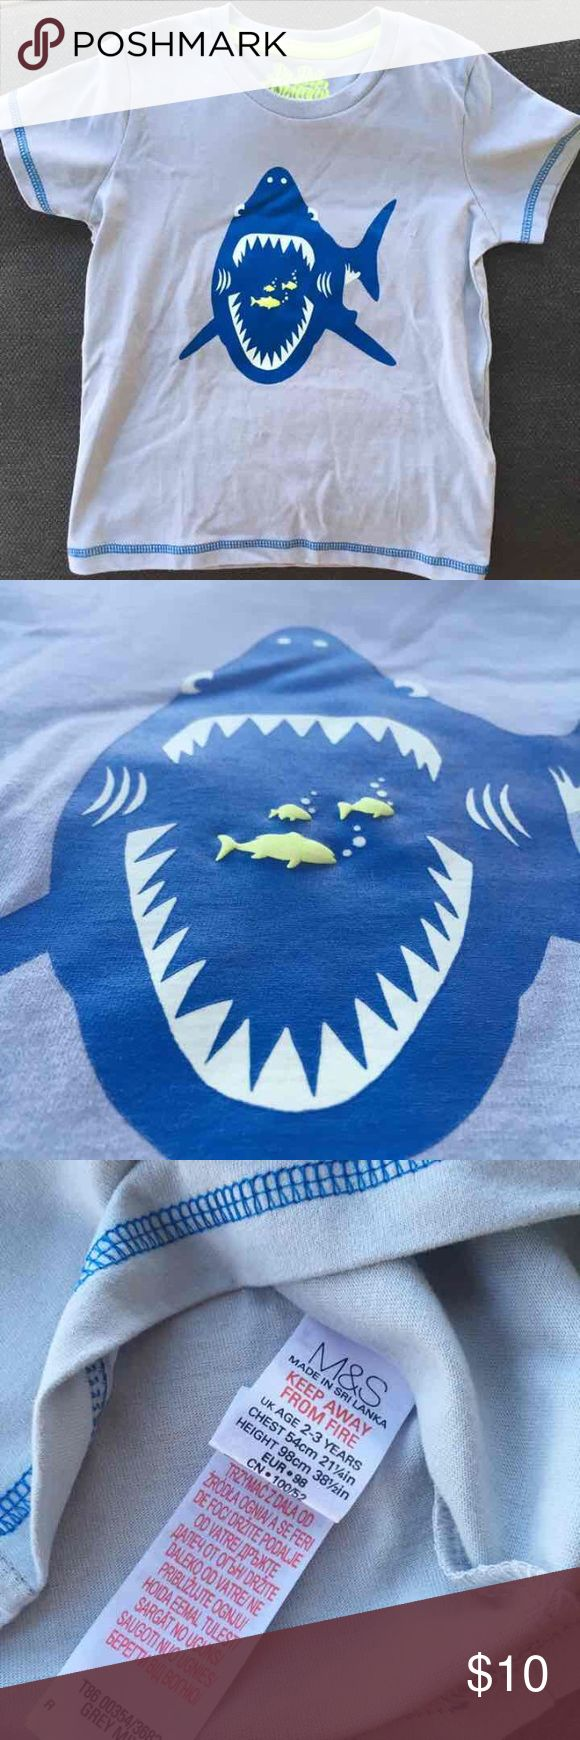 NWOT grey tshirt. Brand new. Soft cotton.  Can be used as tshirt for play or sleep time.  Nice detail on the little fish.  By Marks & Spencer, UK. M&S Shirts & Tops Tees - Short Sleeve